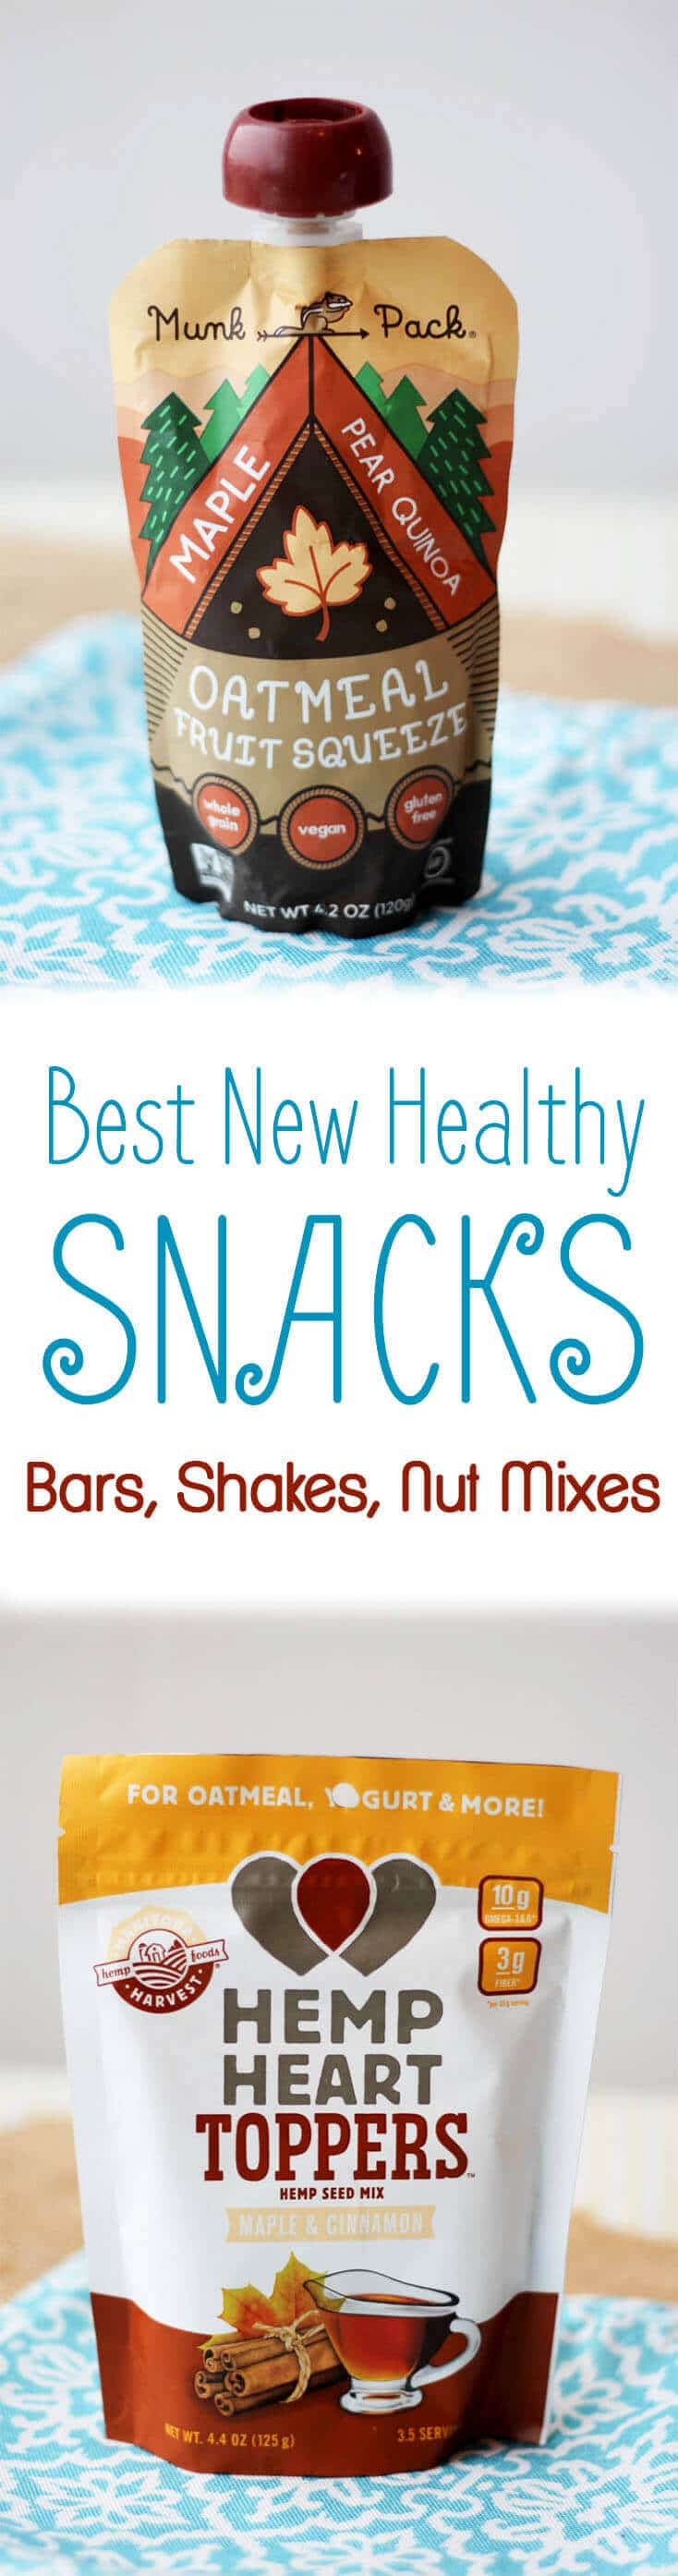 """A pinterest image of snacks with the text overlay \""""Best New Healthy Snacks Bars, Shakes, Nut Mixes.\"""""""